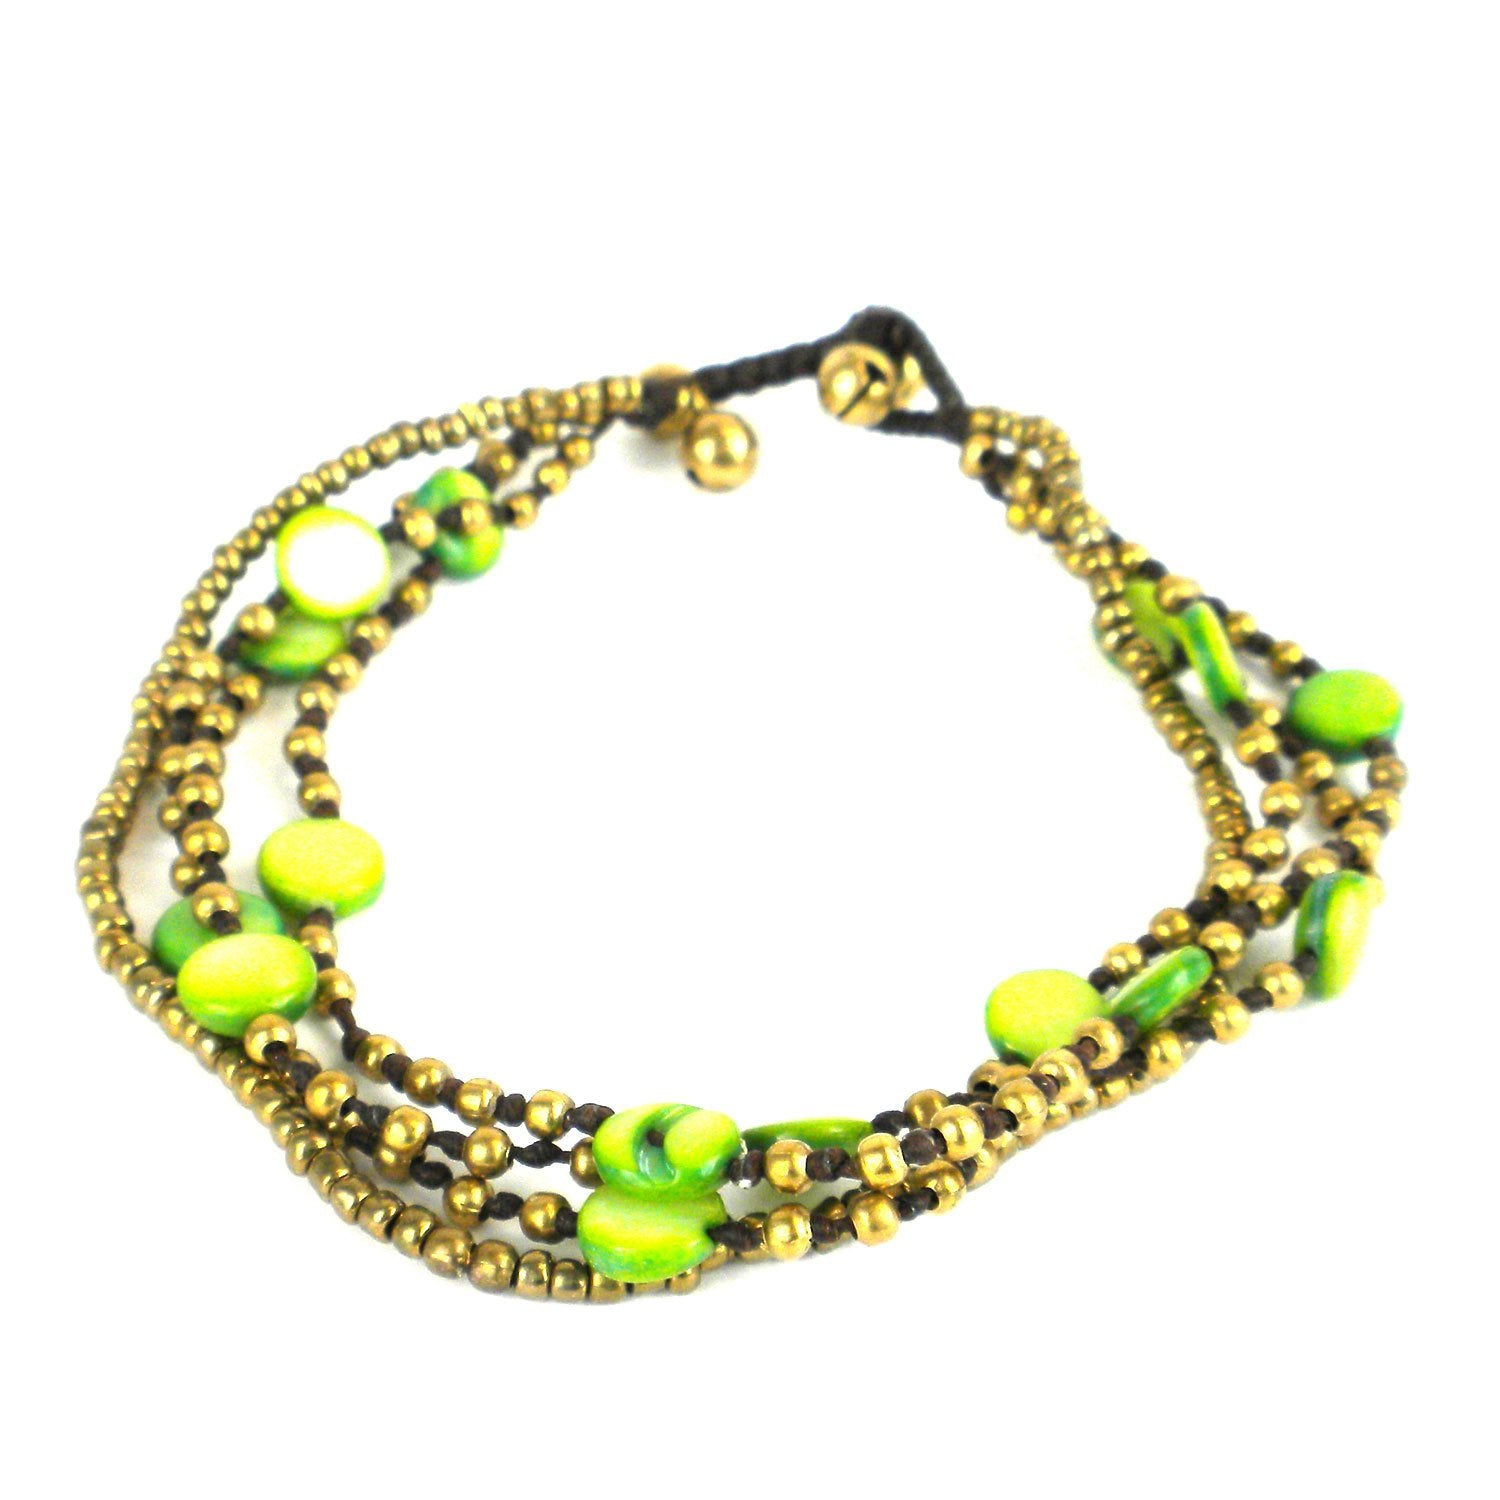 Boho Jewelry Collection Many Moons Anklet, Lime